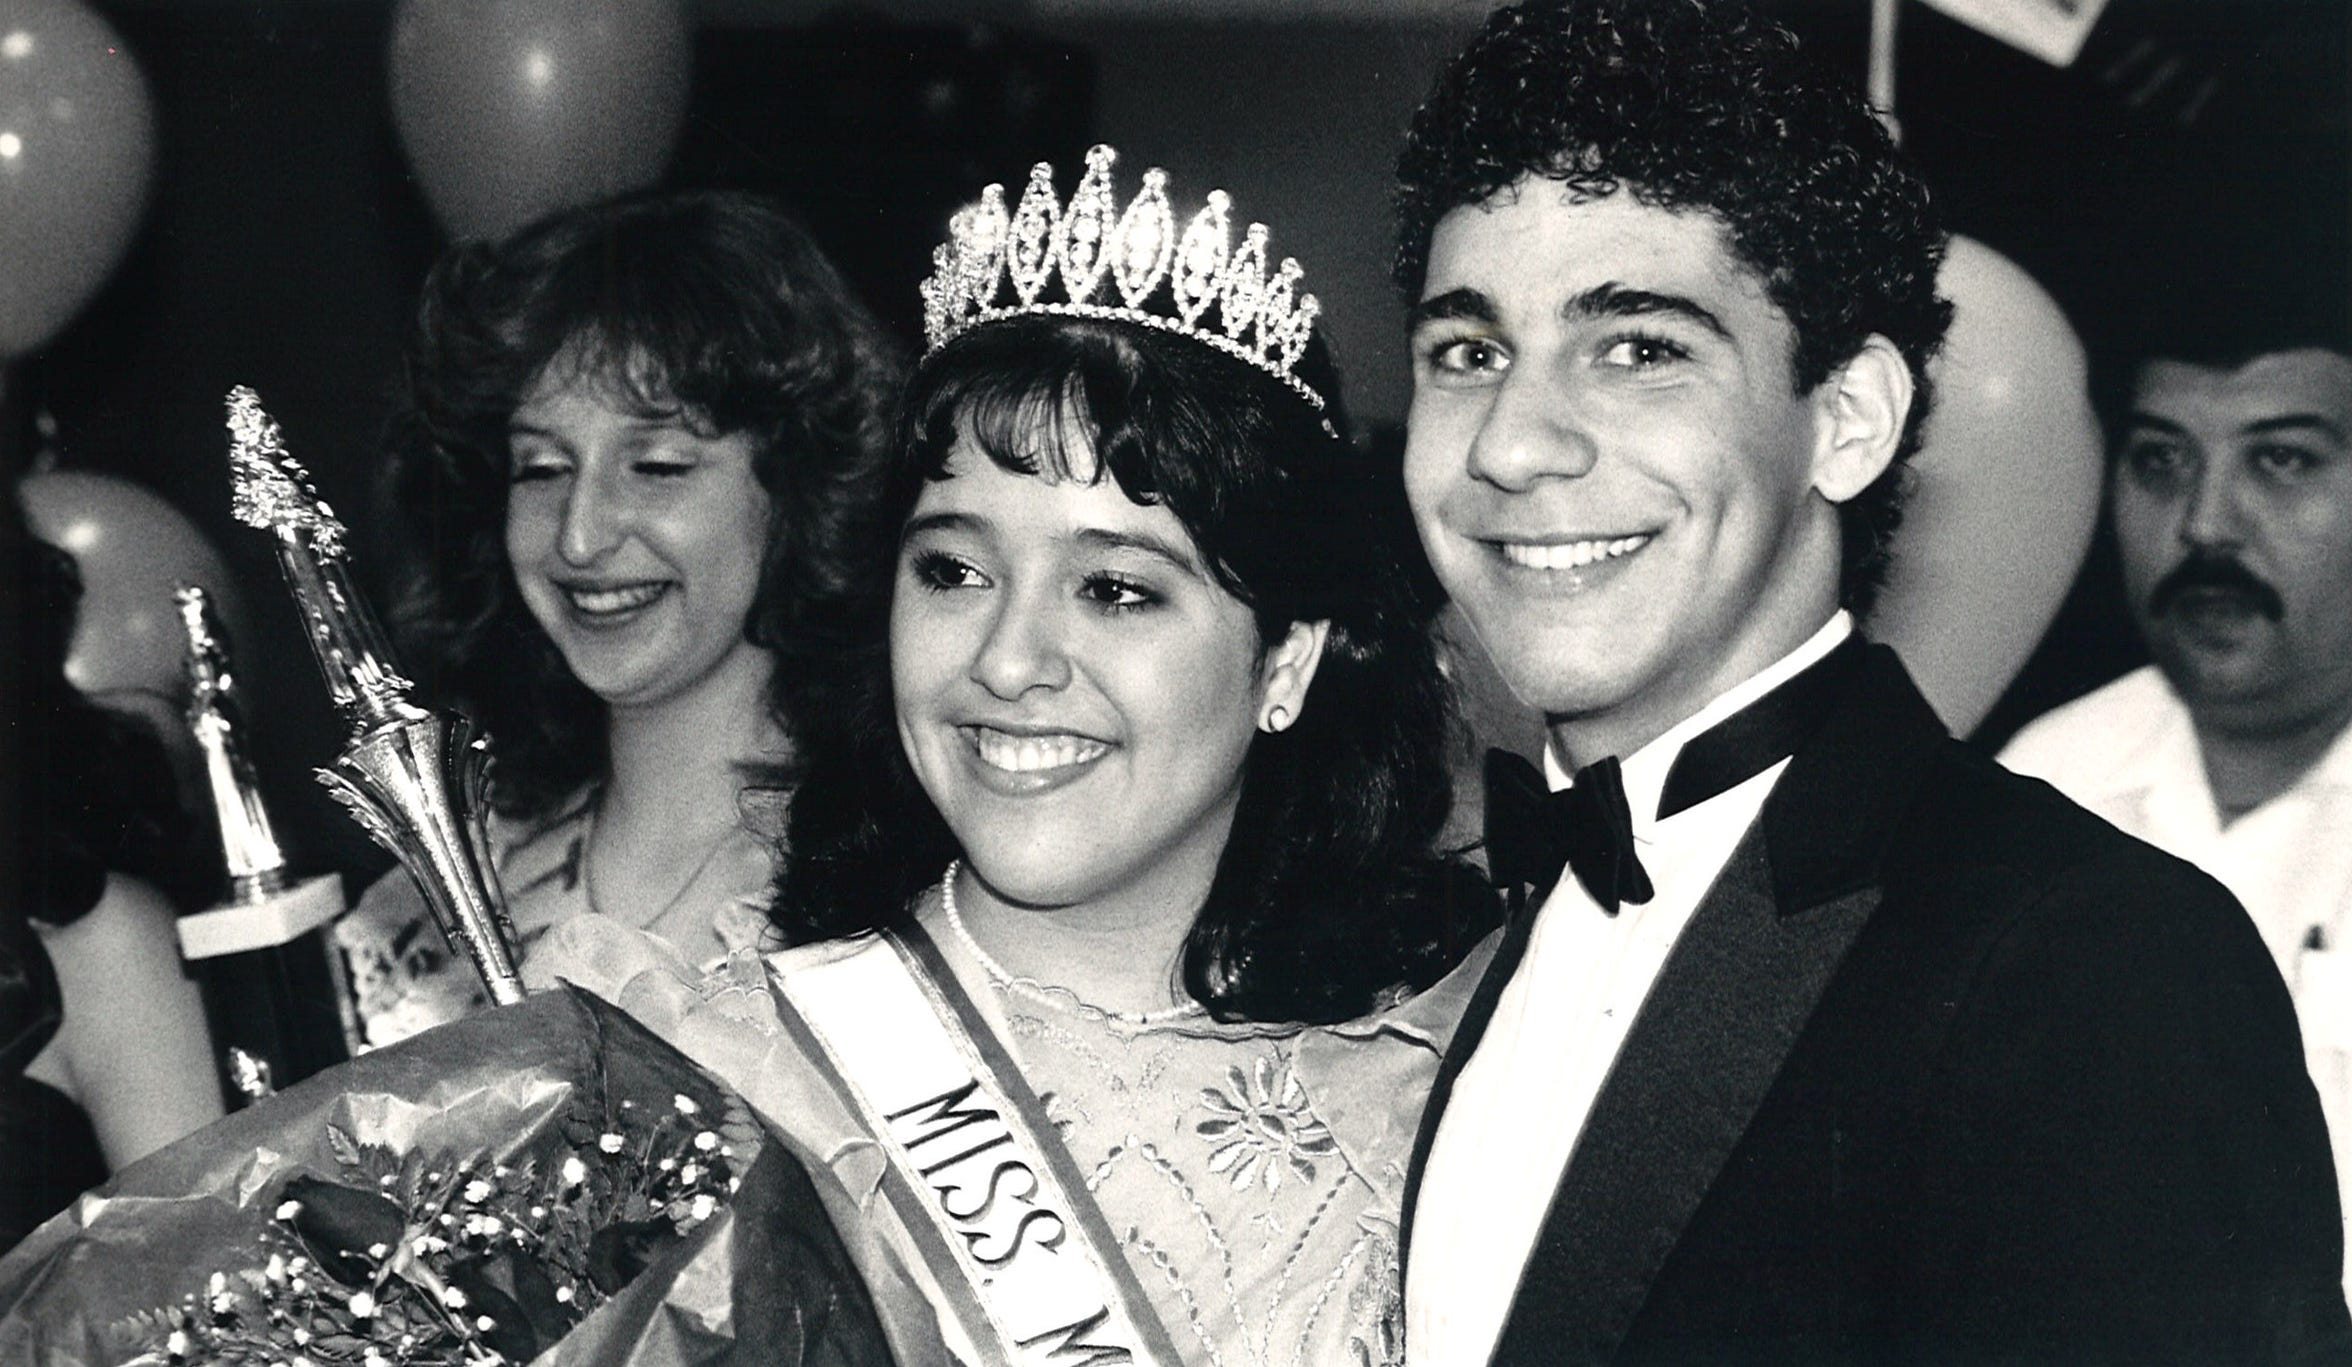 Carroll High School sophomore Tracy Benevidez was crowned the Menudo Bowl queen on Jan. 24, 1986. Former Menudo member Ricky Melendez (right) was one of the five judges that year.